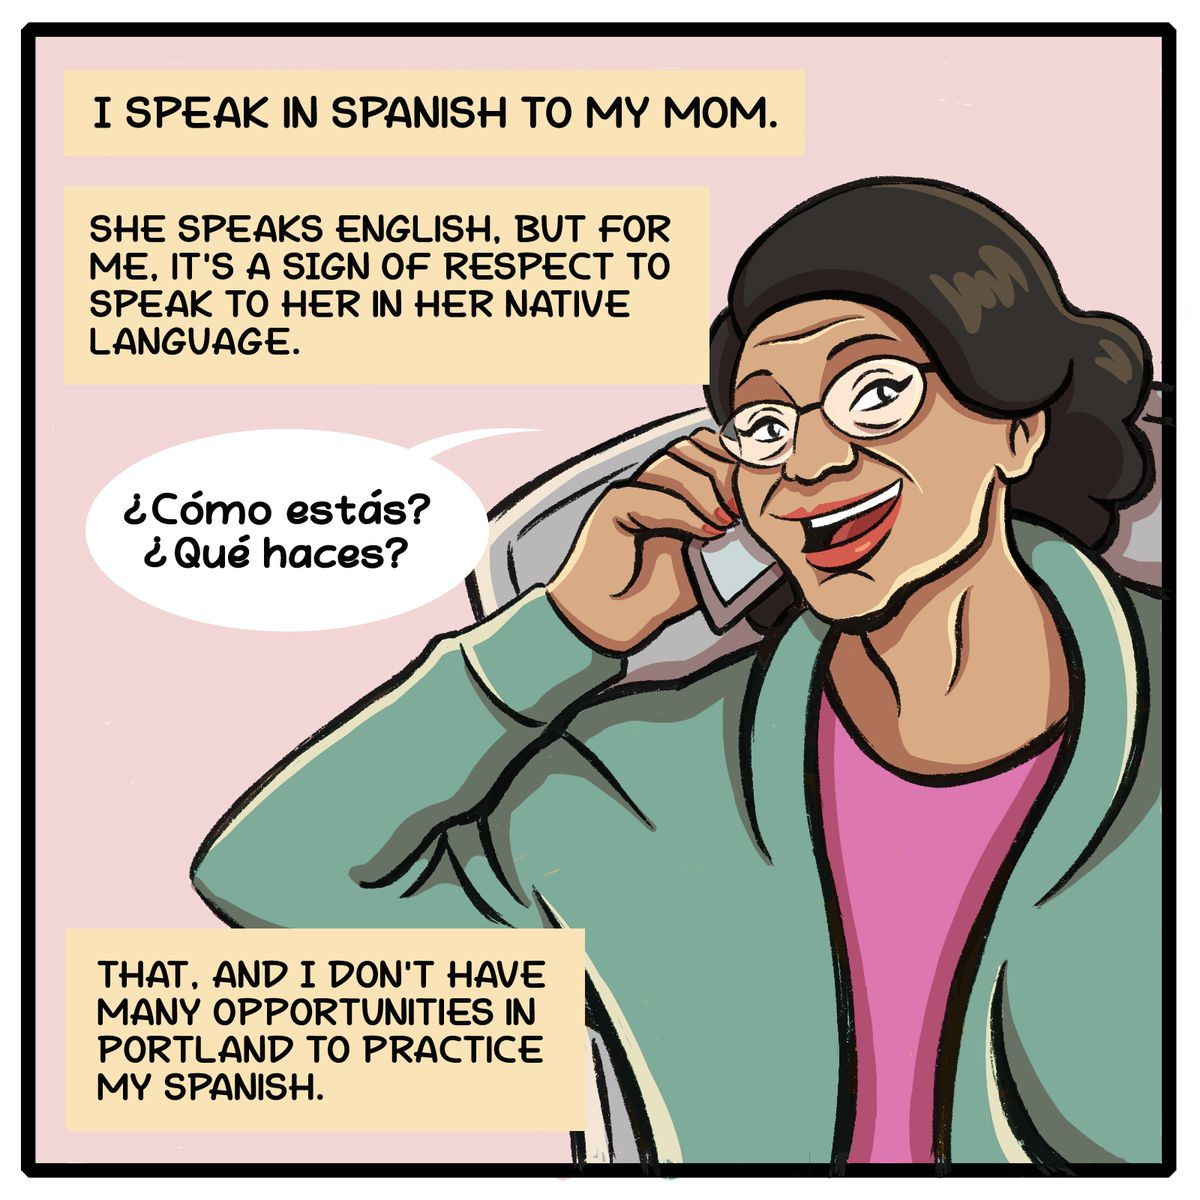 I speak in Spanish to my mom. She speaks English, but for me it's a sign of respect to speak to her in her native language. That, and I don't have many opportunities in Portland to practice my Spanish.